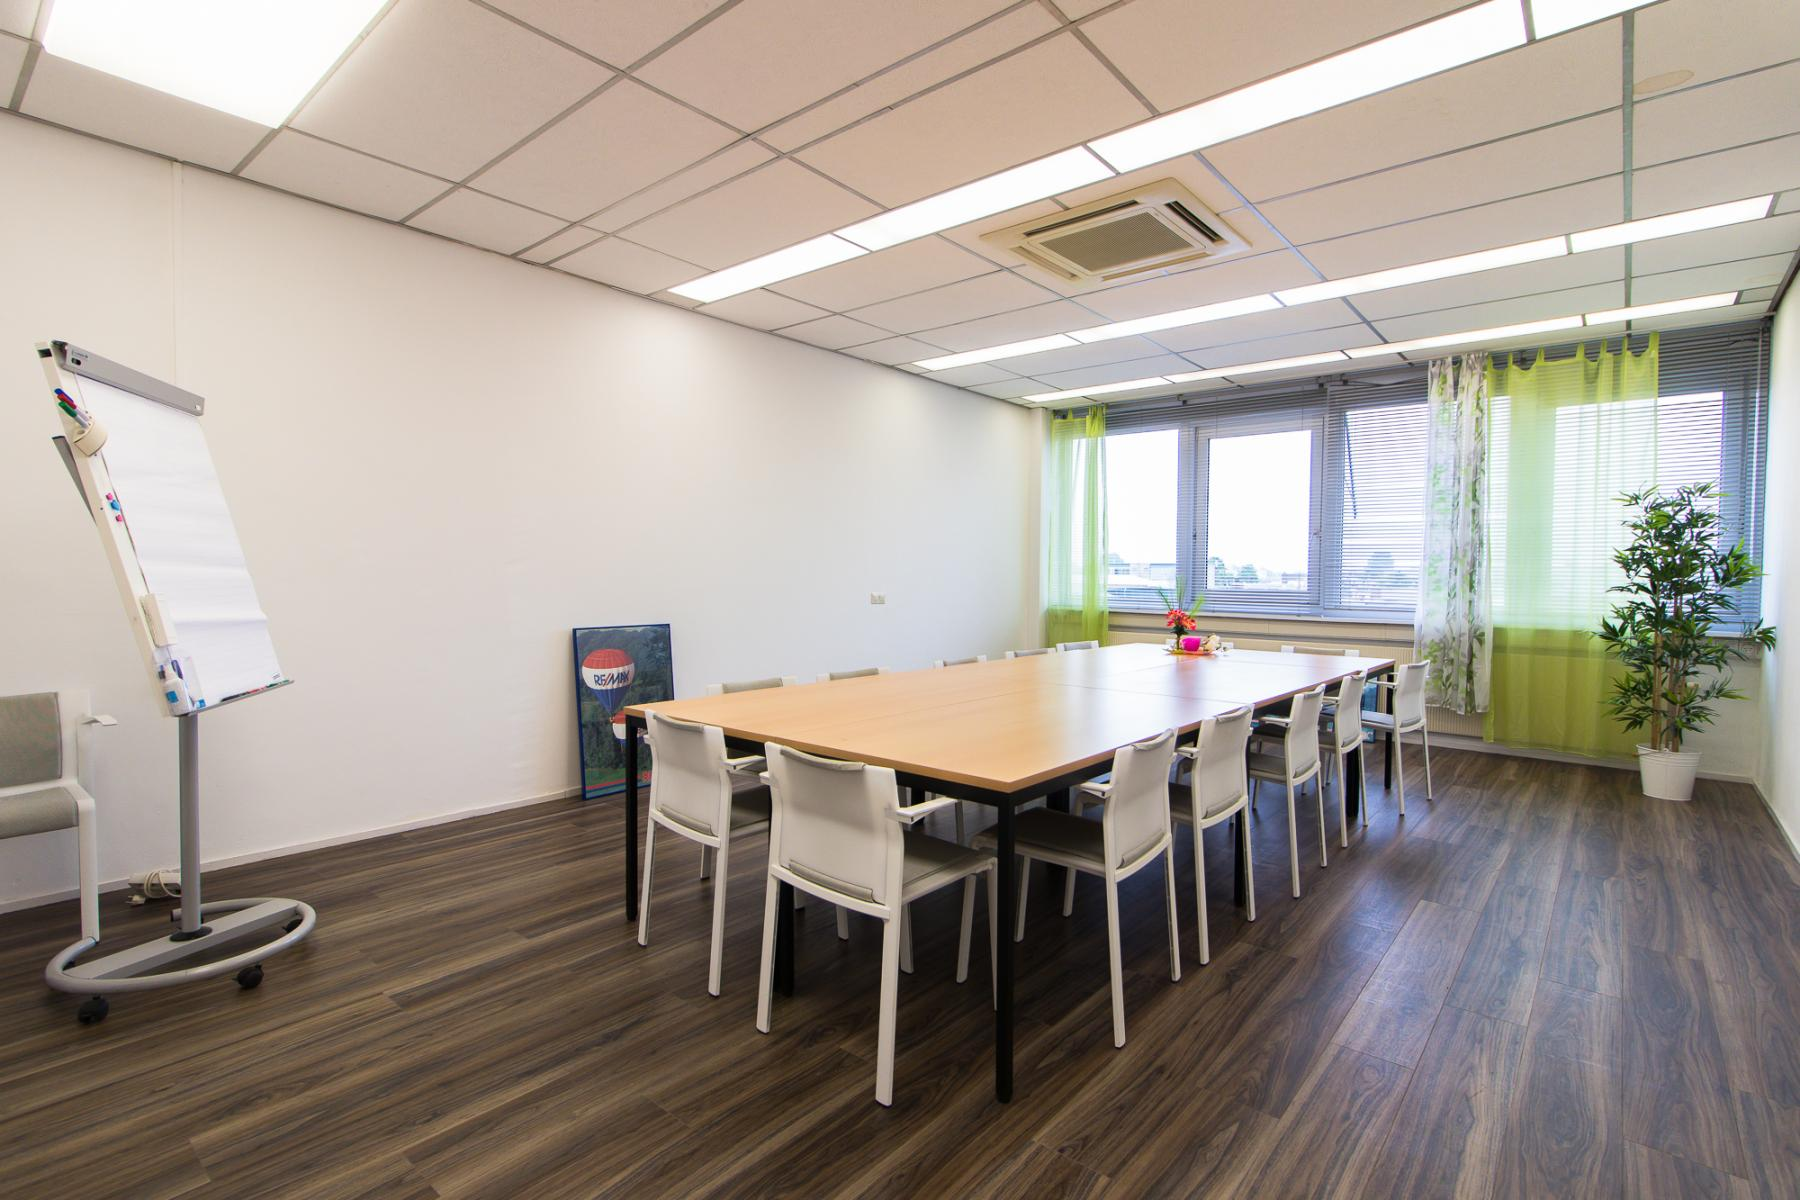 Sufficient meeting rooms available at the Waarderweg